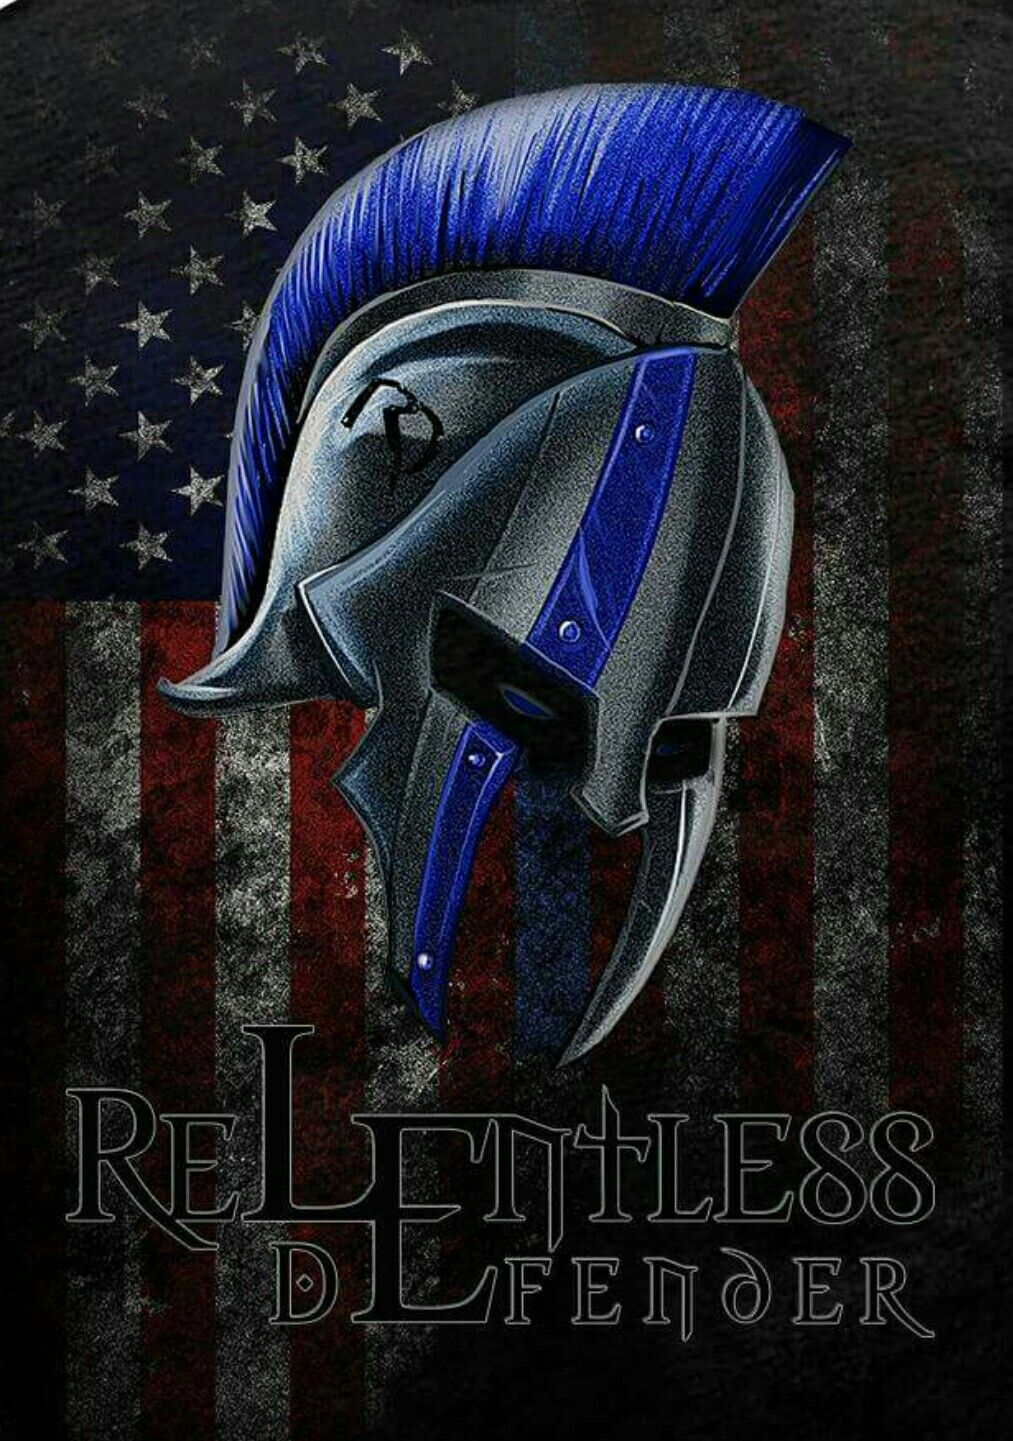 Pin By James On Cop Life Police Tattoo Thin Blue Line Decal Spartan Tattoo